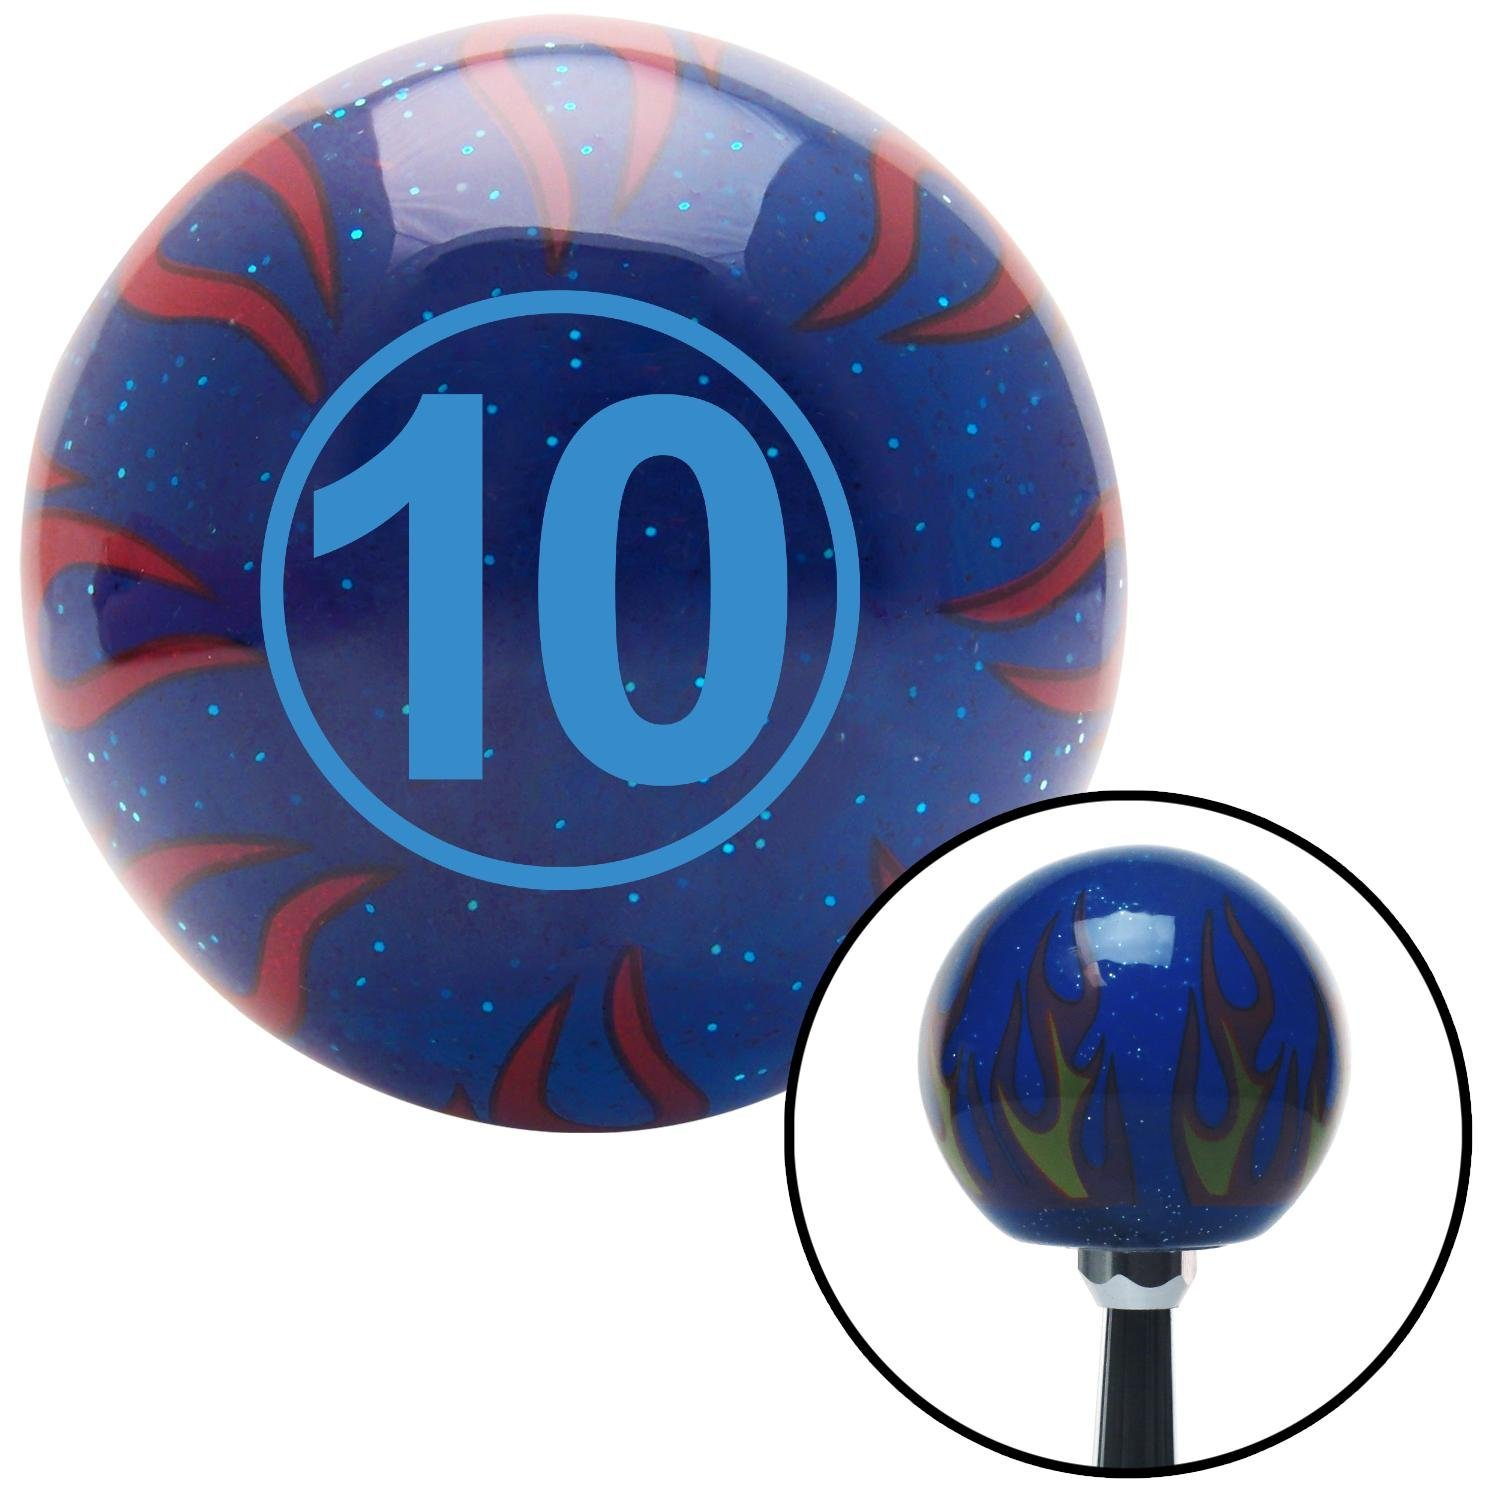 Blue Ball #10 American Shifter 244578 Blue Flame Metal Flake Shift Knob with M16 x 1.5 Insert